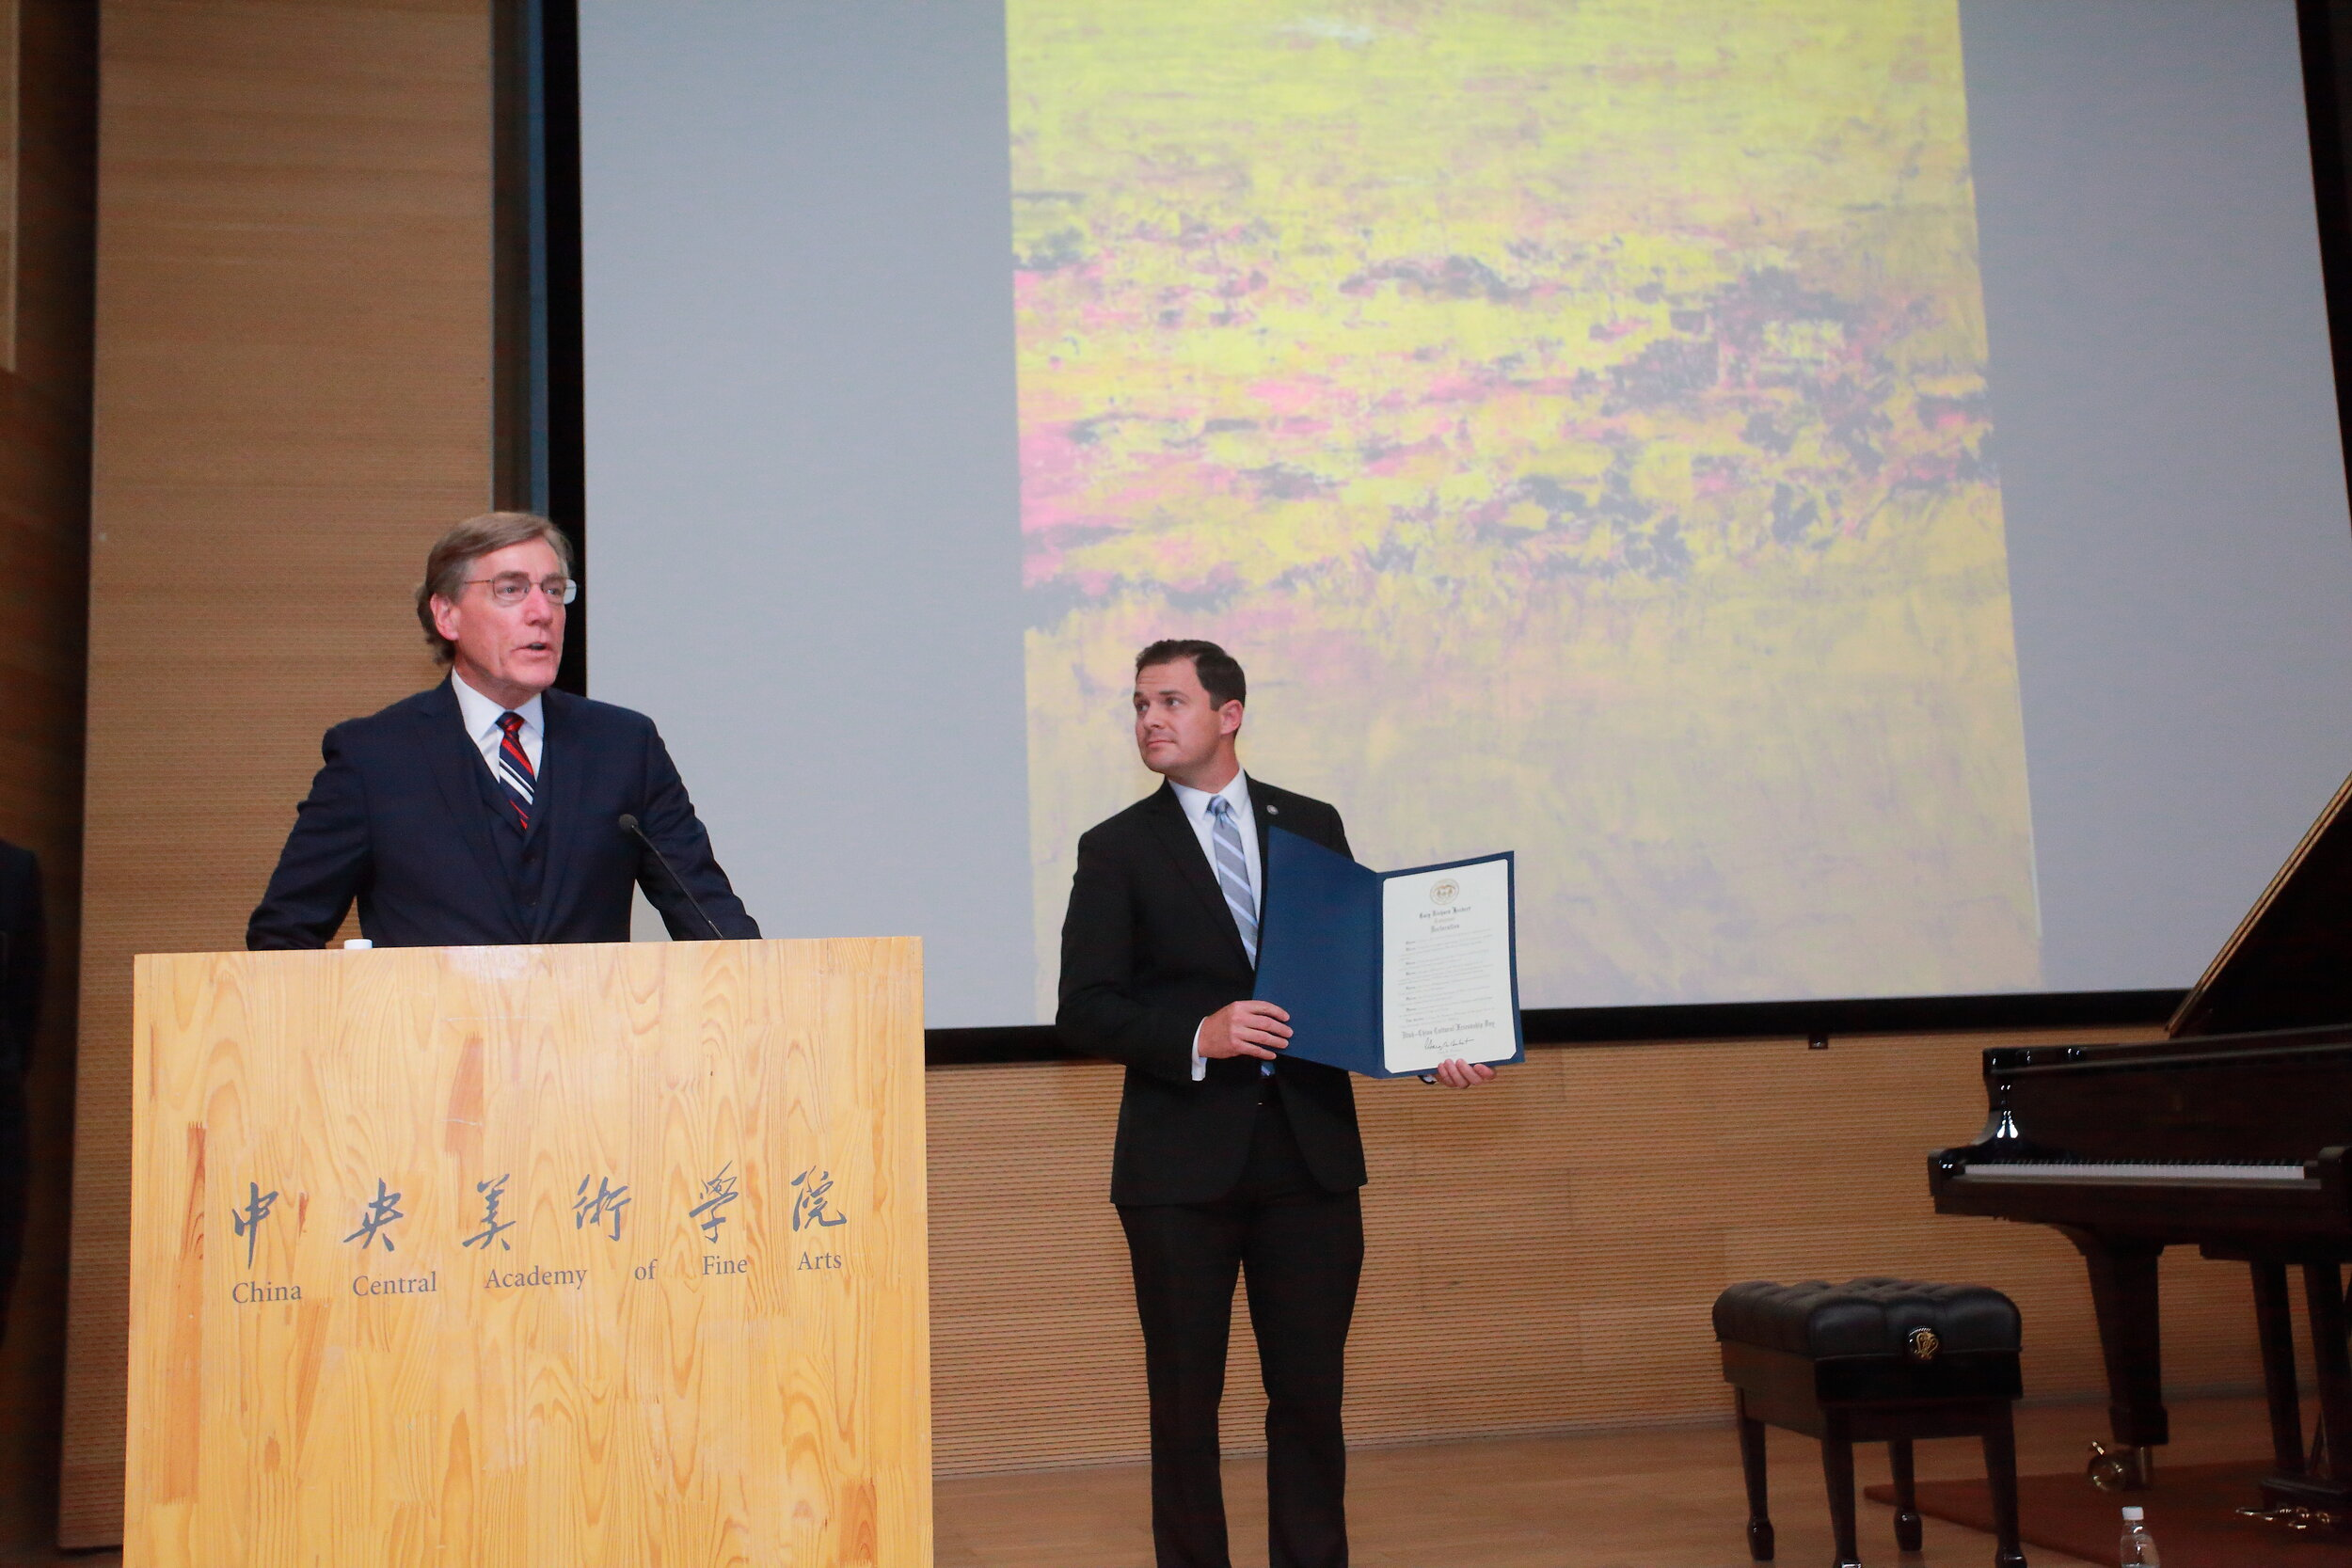 Brad Herbert presents the declaration of Utah-China Cultural Friendship Day alongside A. Scott Anderson